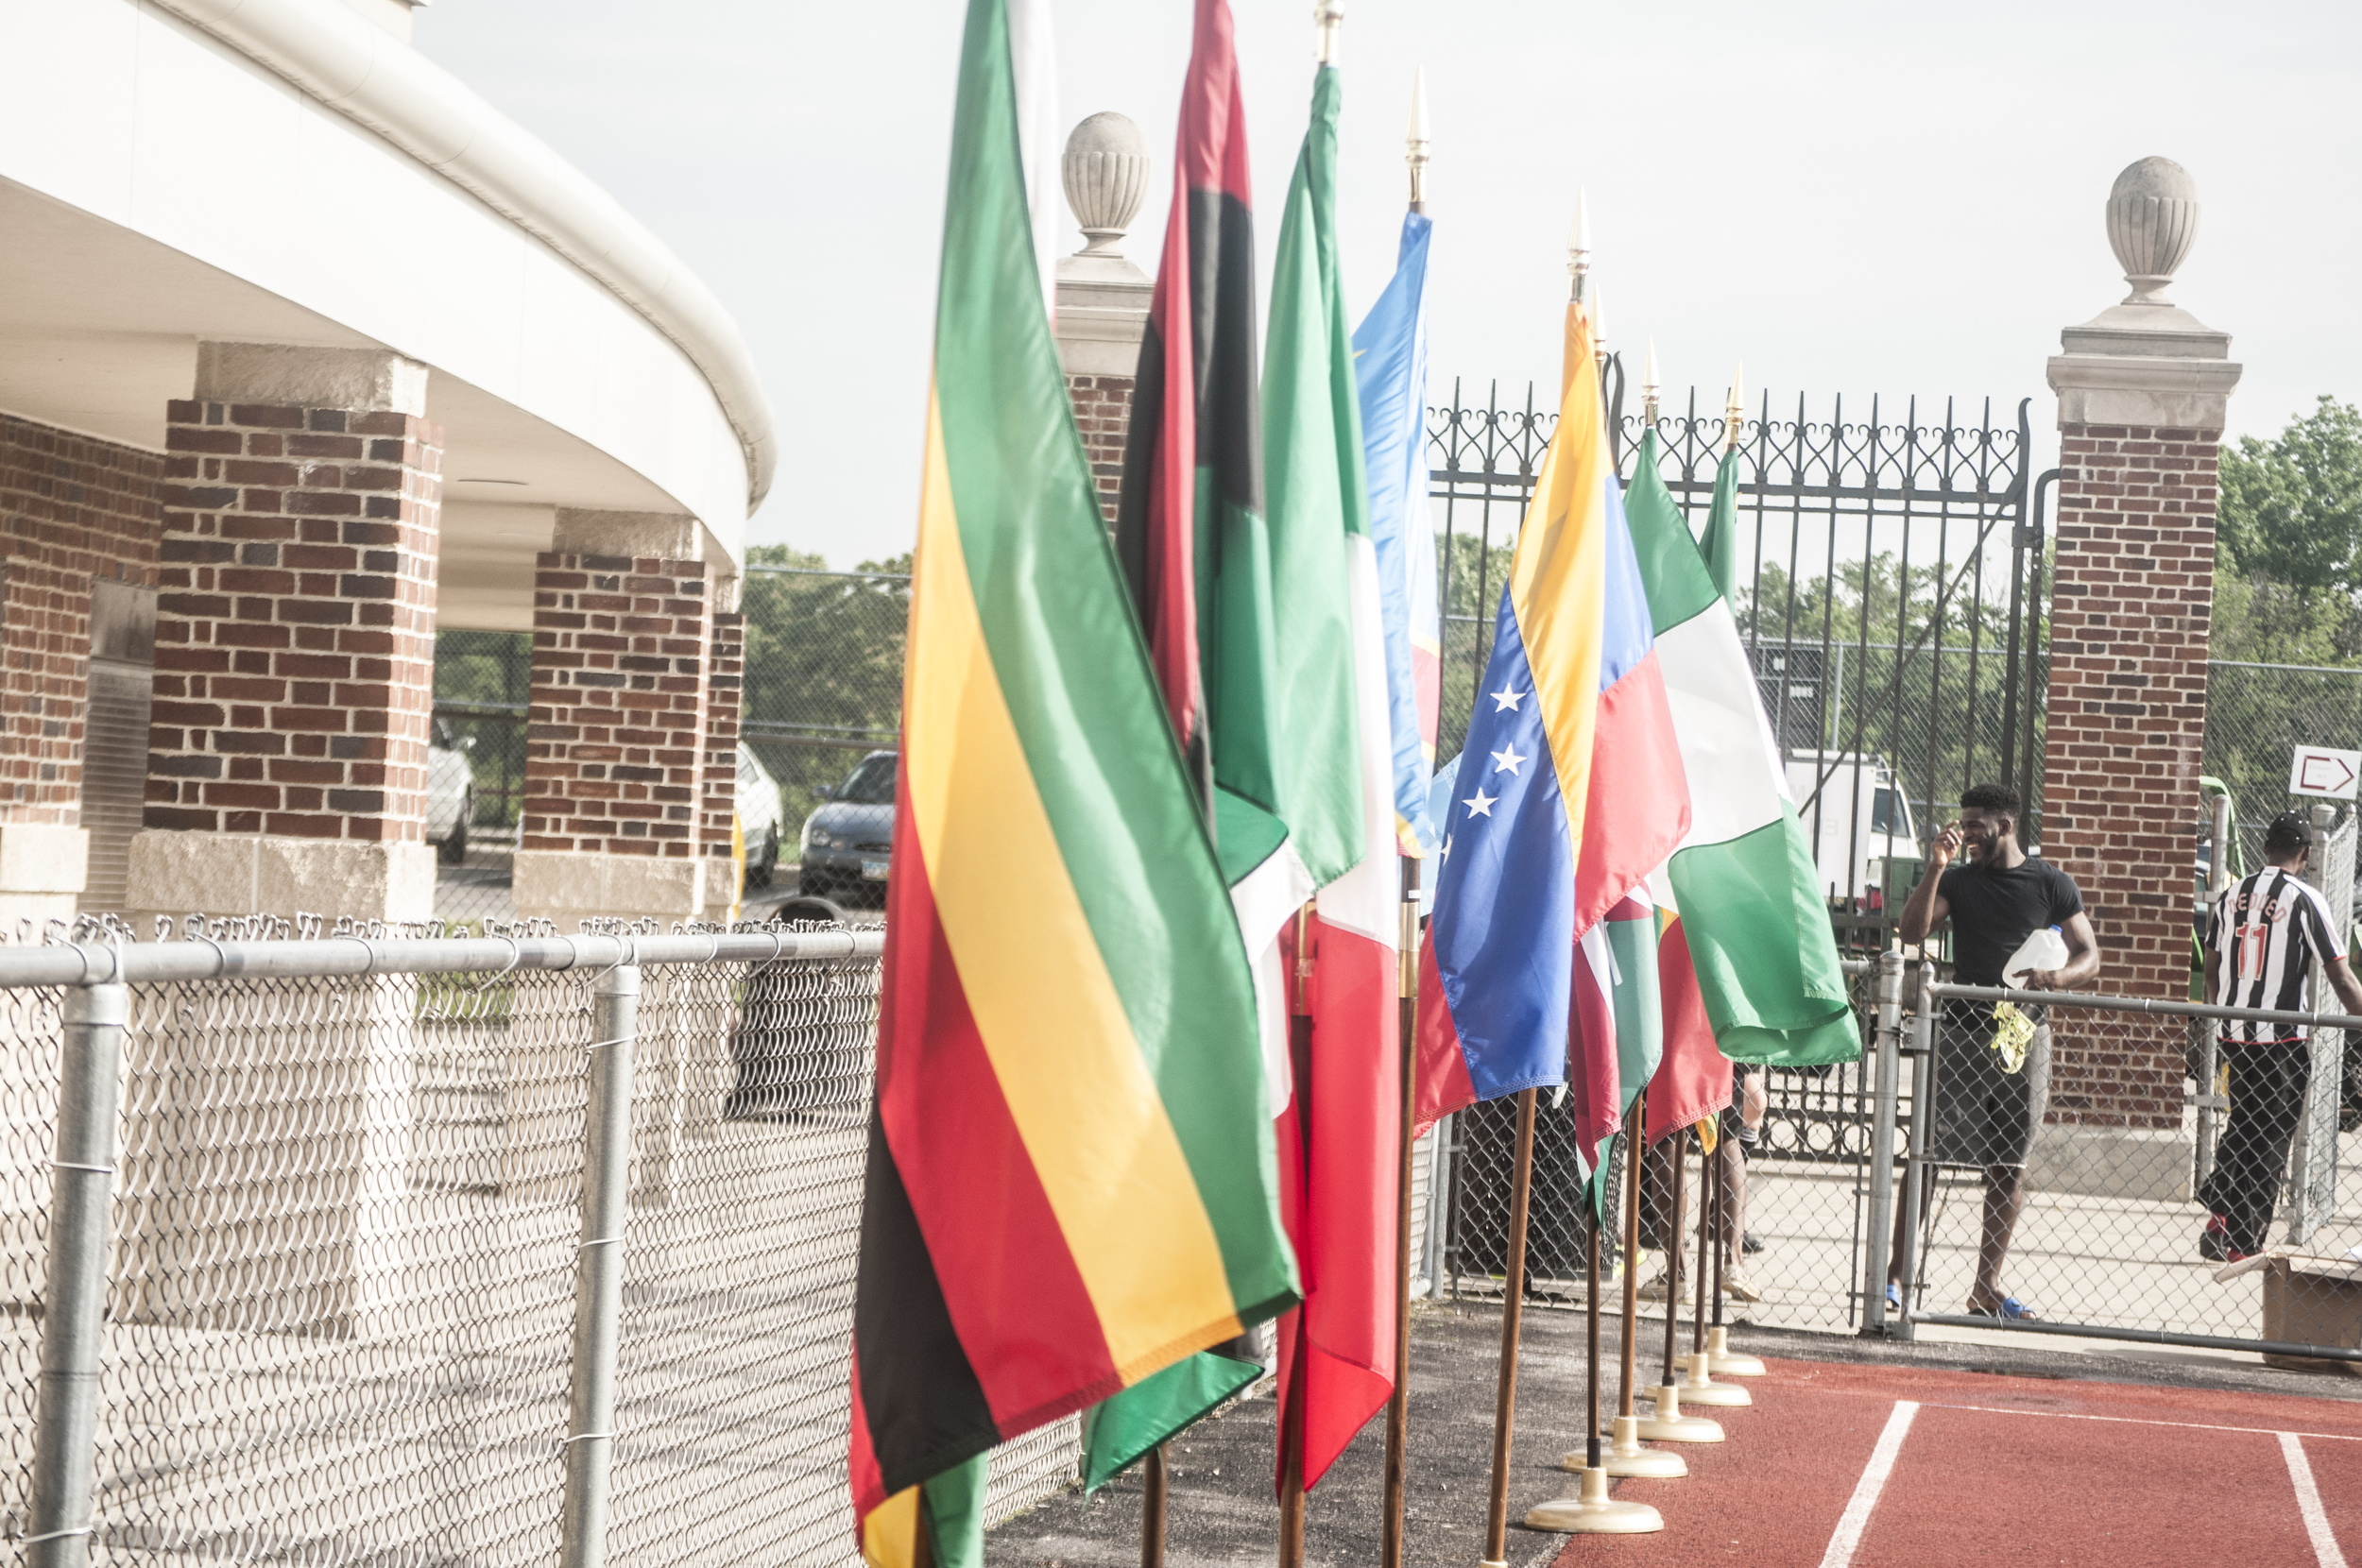 Line of the flags.